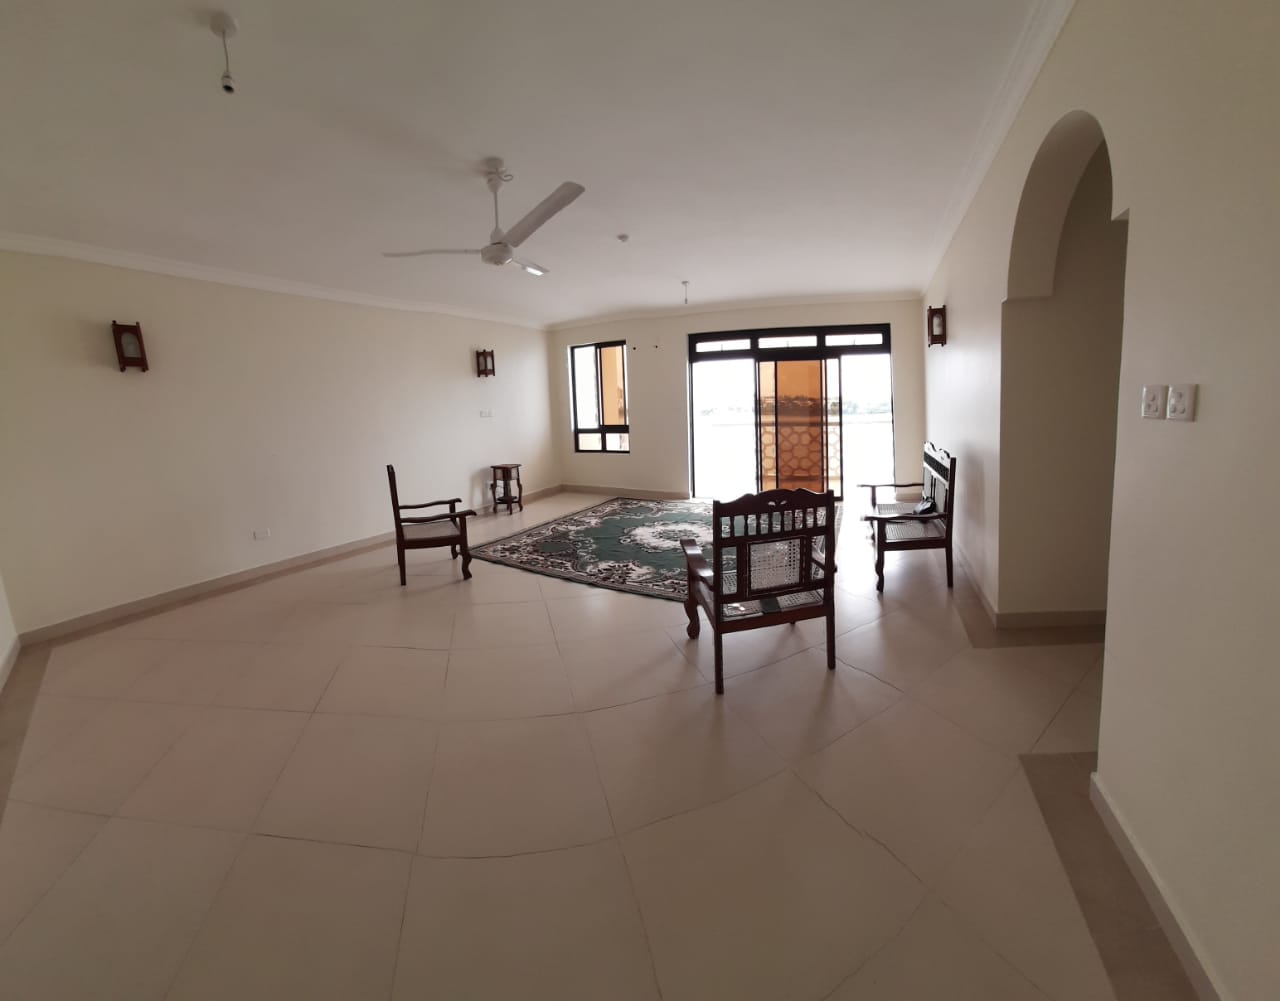 Spectacular sea view 3 to 4 bedrooms apartment furnished-unfurnished available in Mombasa